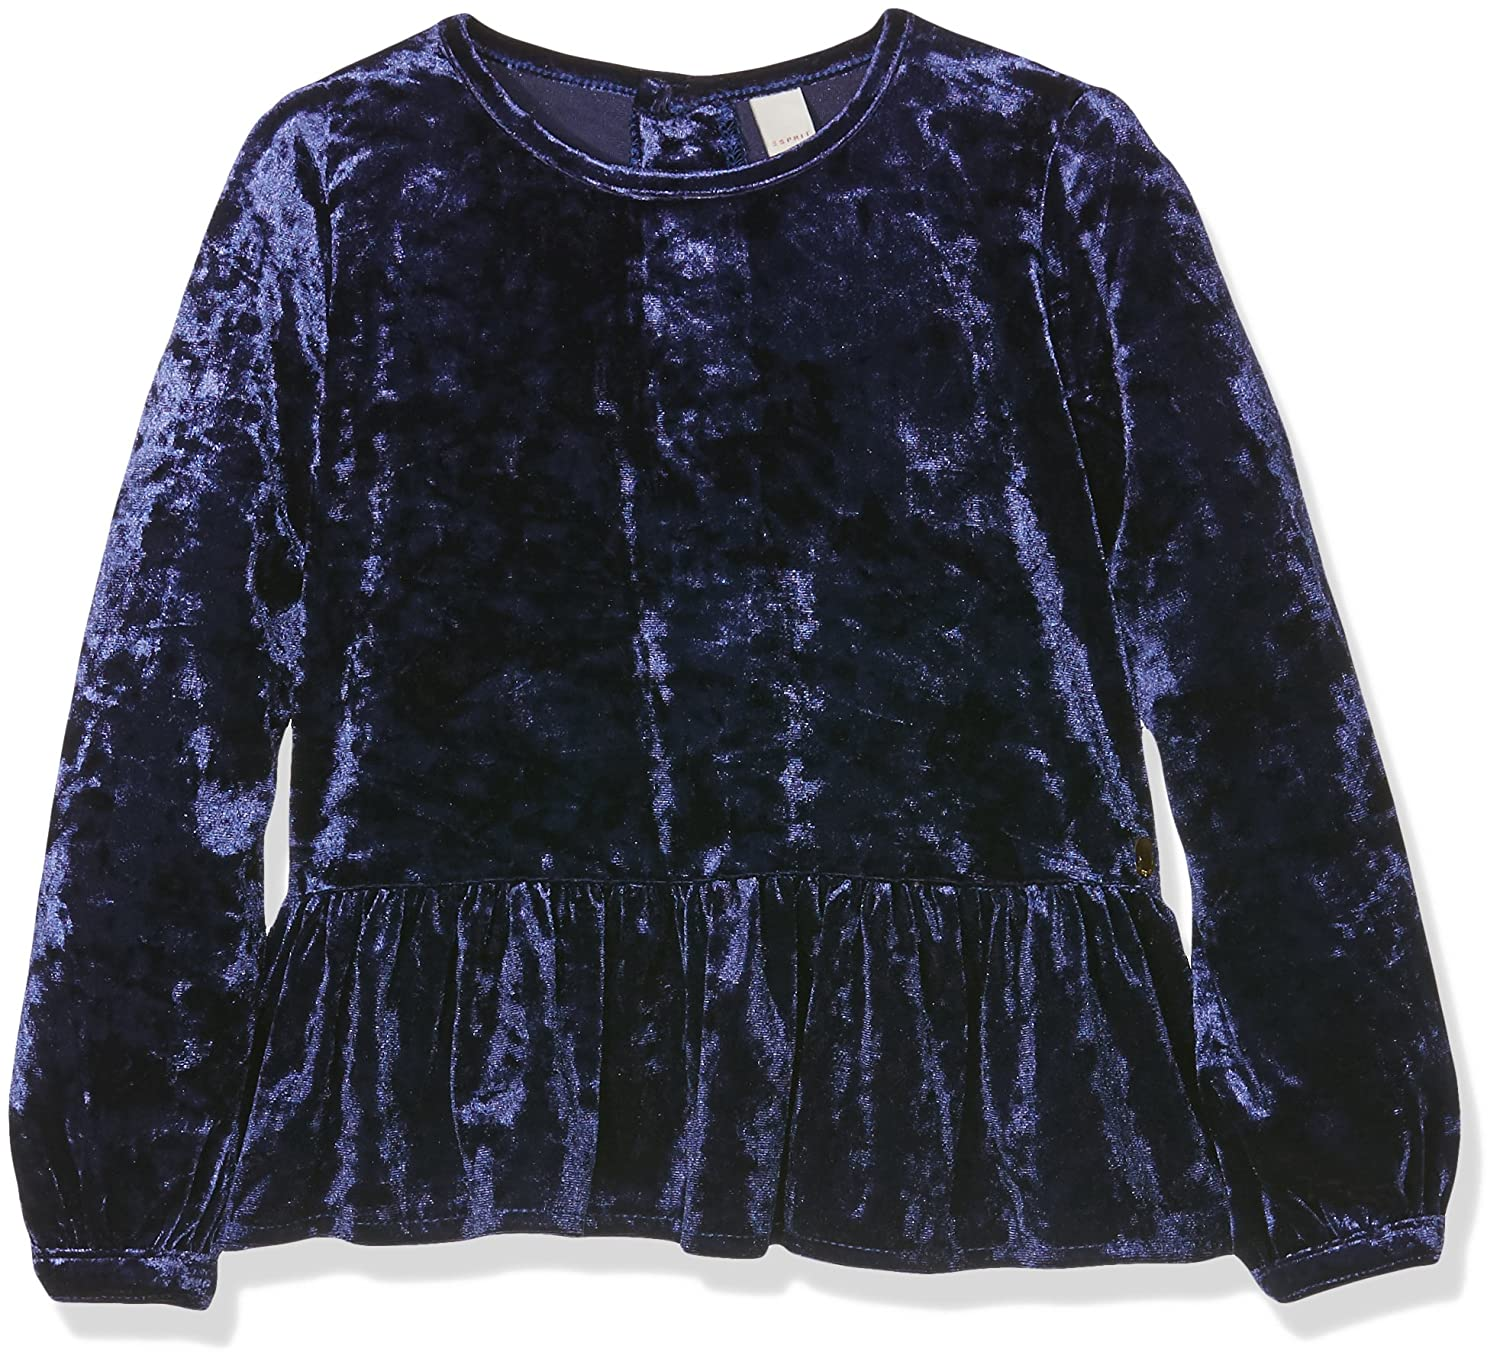 ESPRIT Kids Girl's Bluse Blouse Blue (Navy Blue 470) 6 Years RI12023